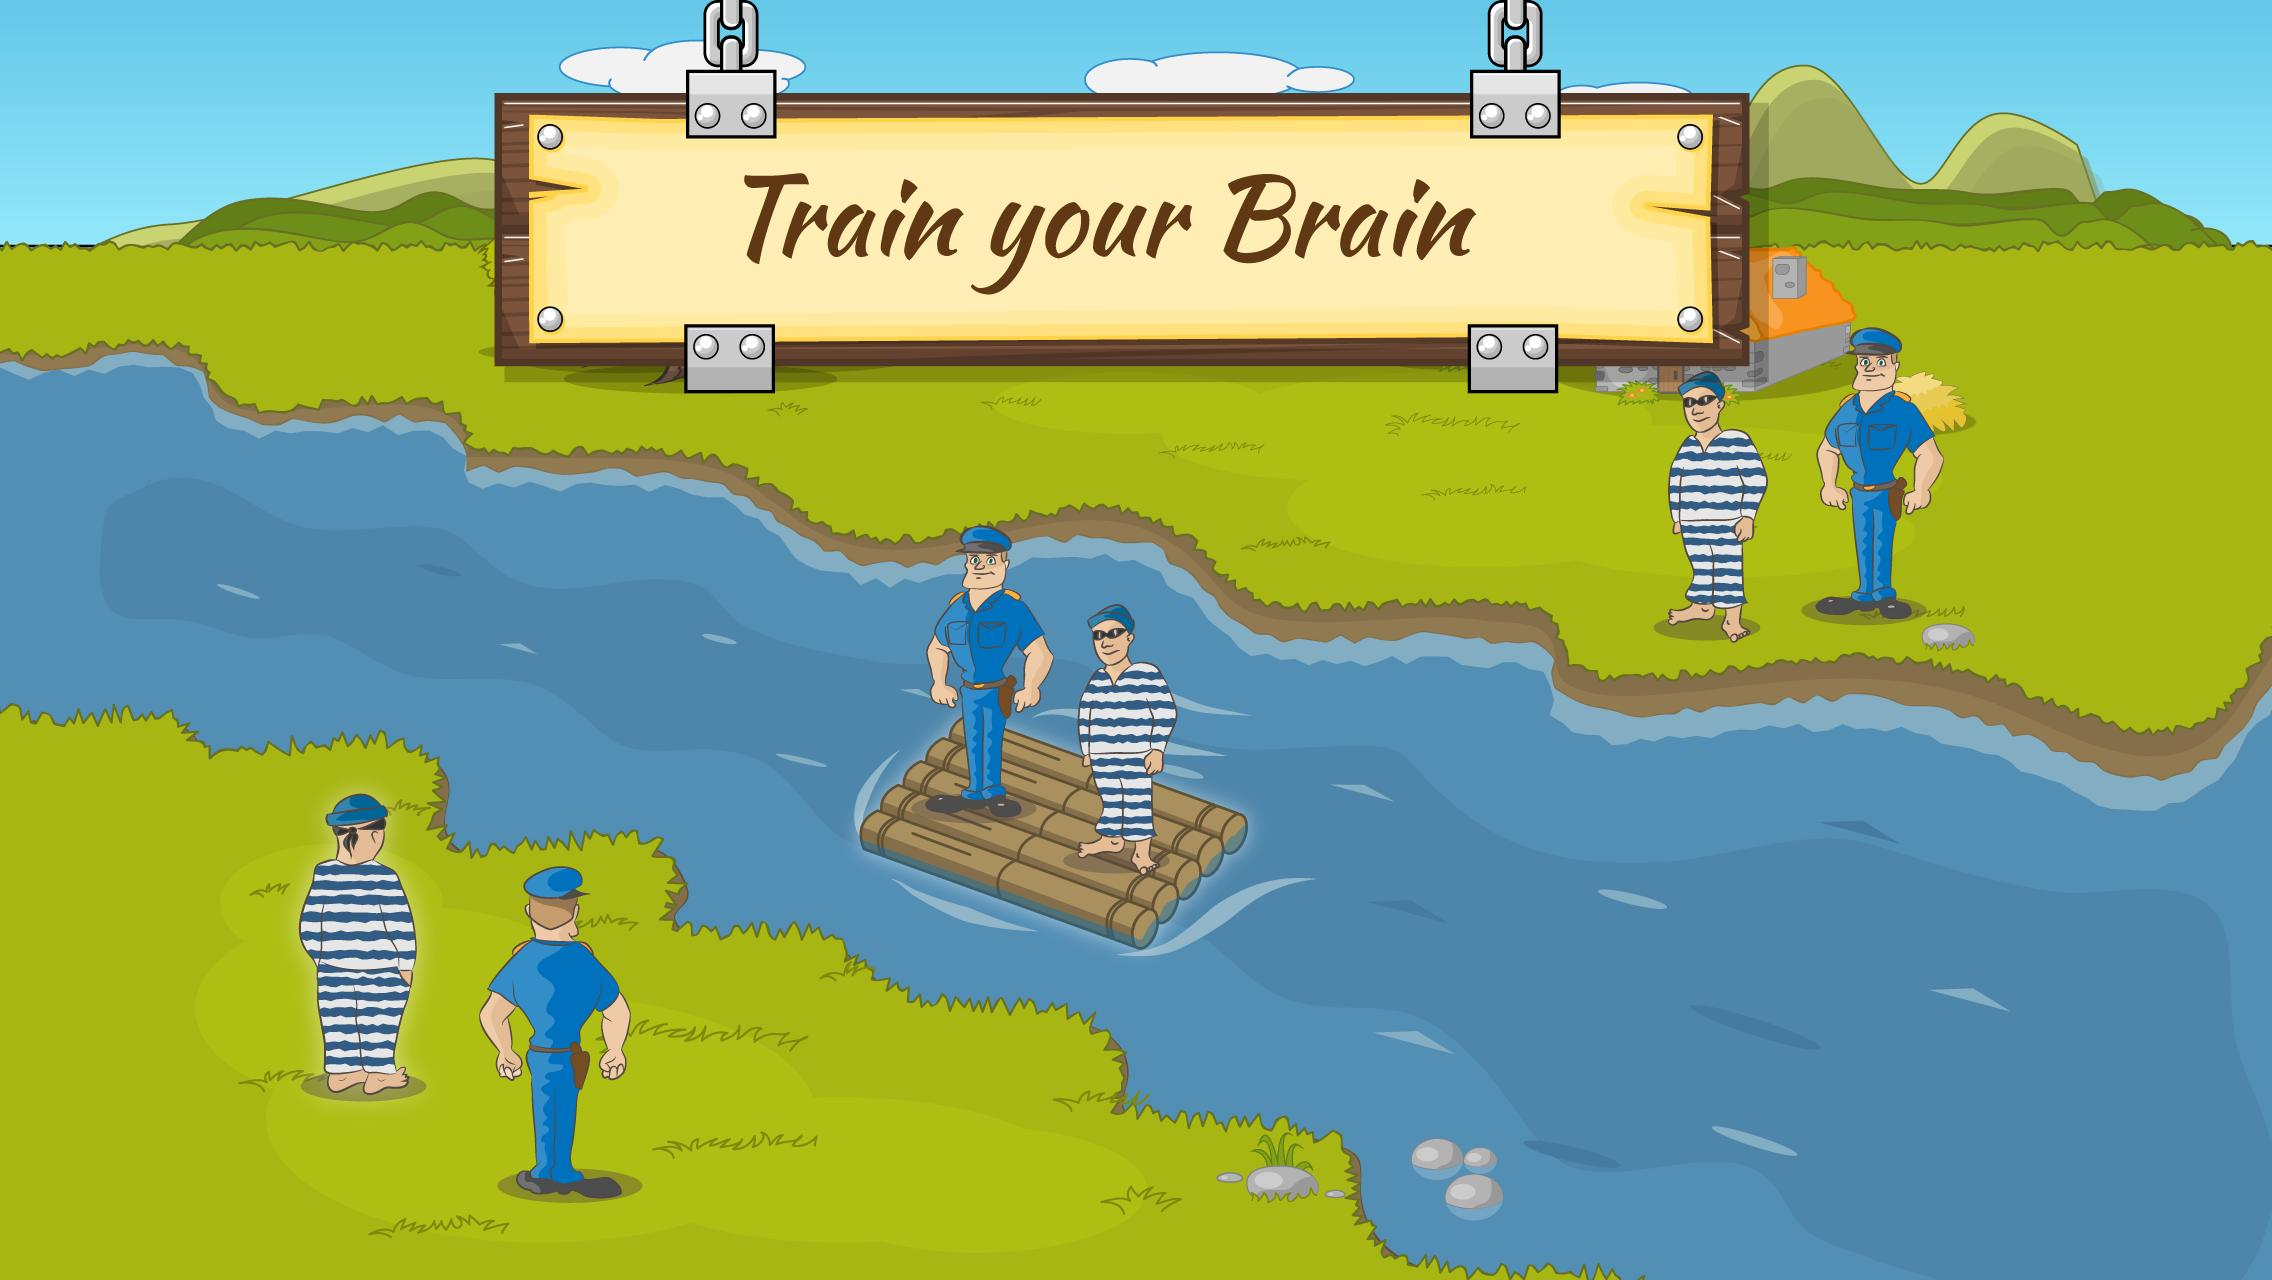 River Crossing IQ Logic Puzzles & Fun Brain Games 1.2.2 Screenshot 4